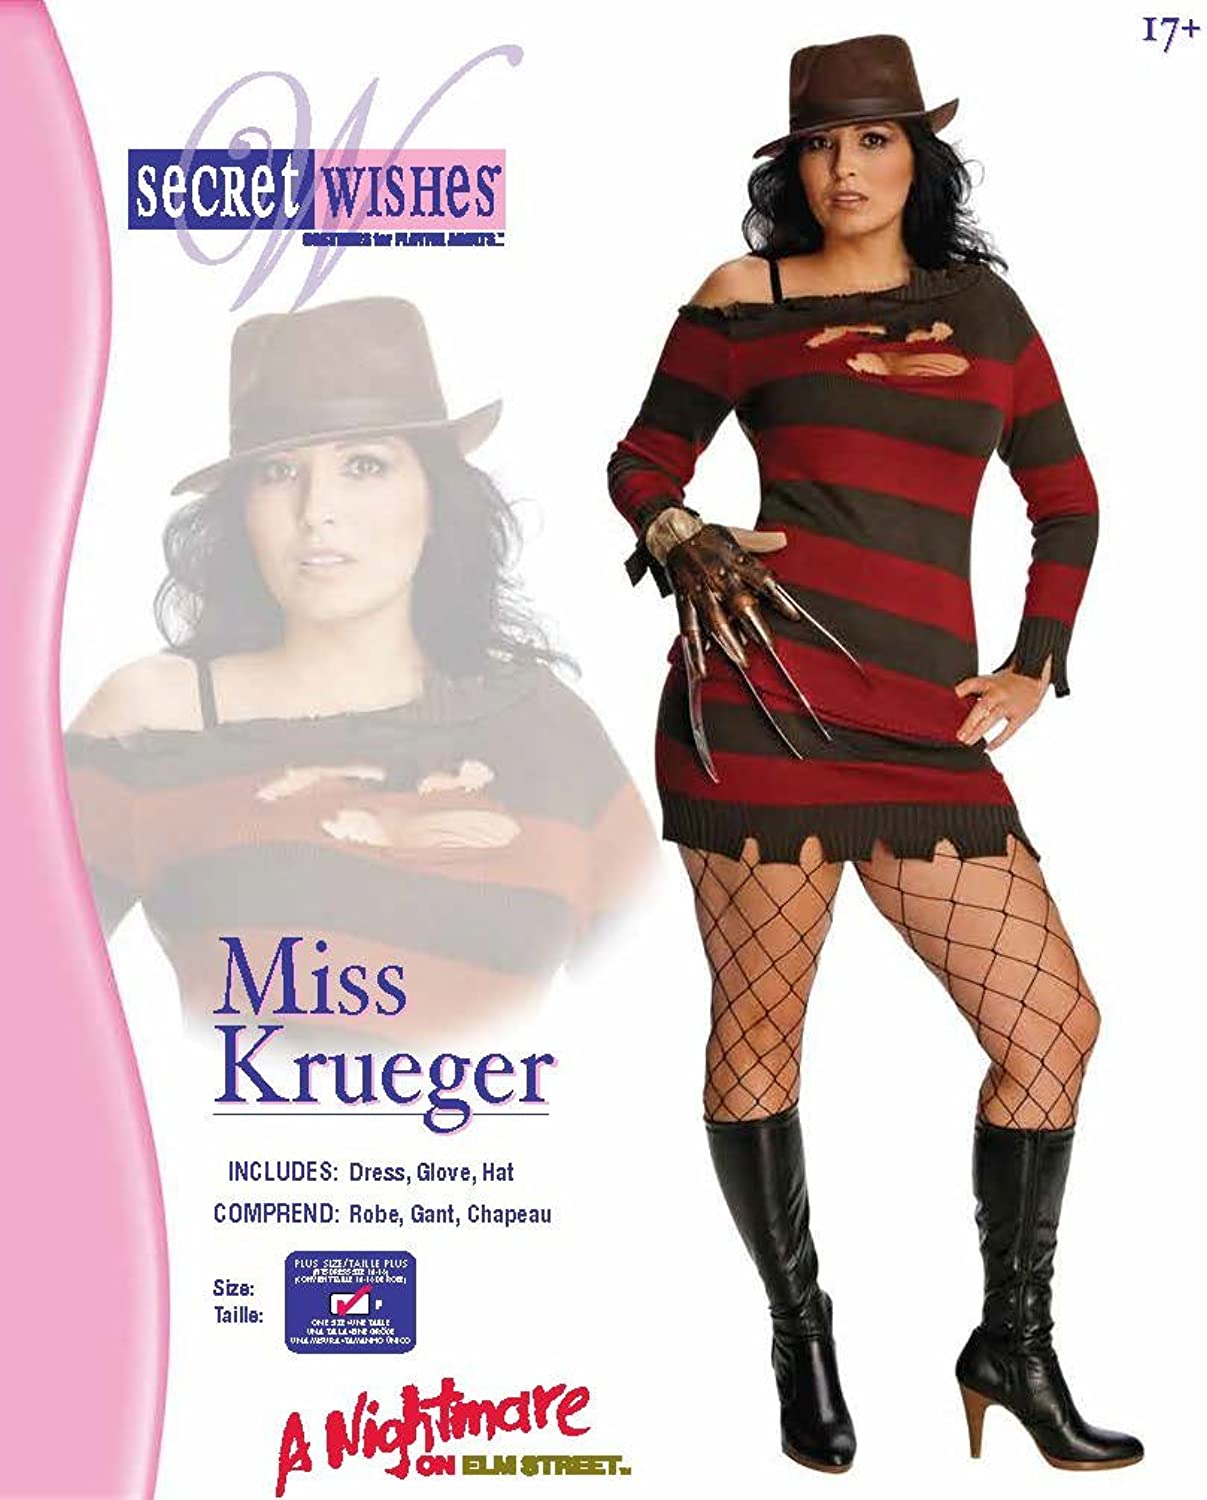 Amazon.com: Secret Wishes Nightmare On Elm Street Miss Krueger ...